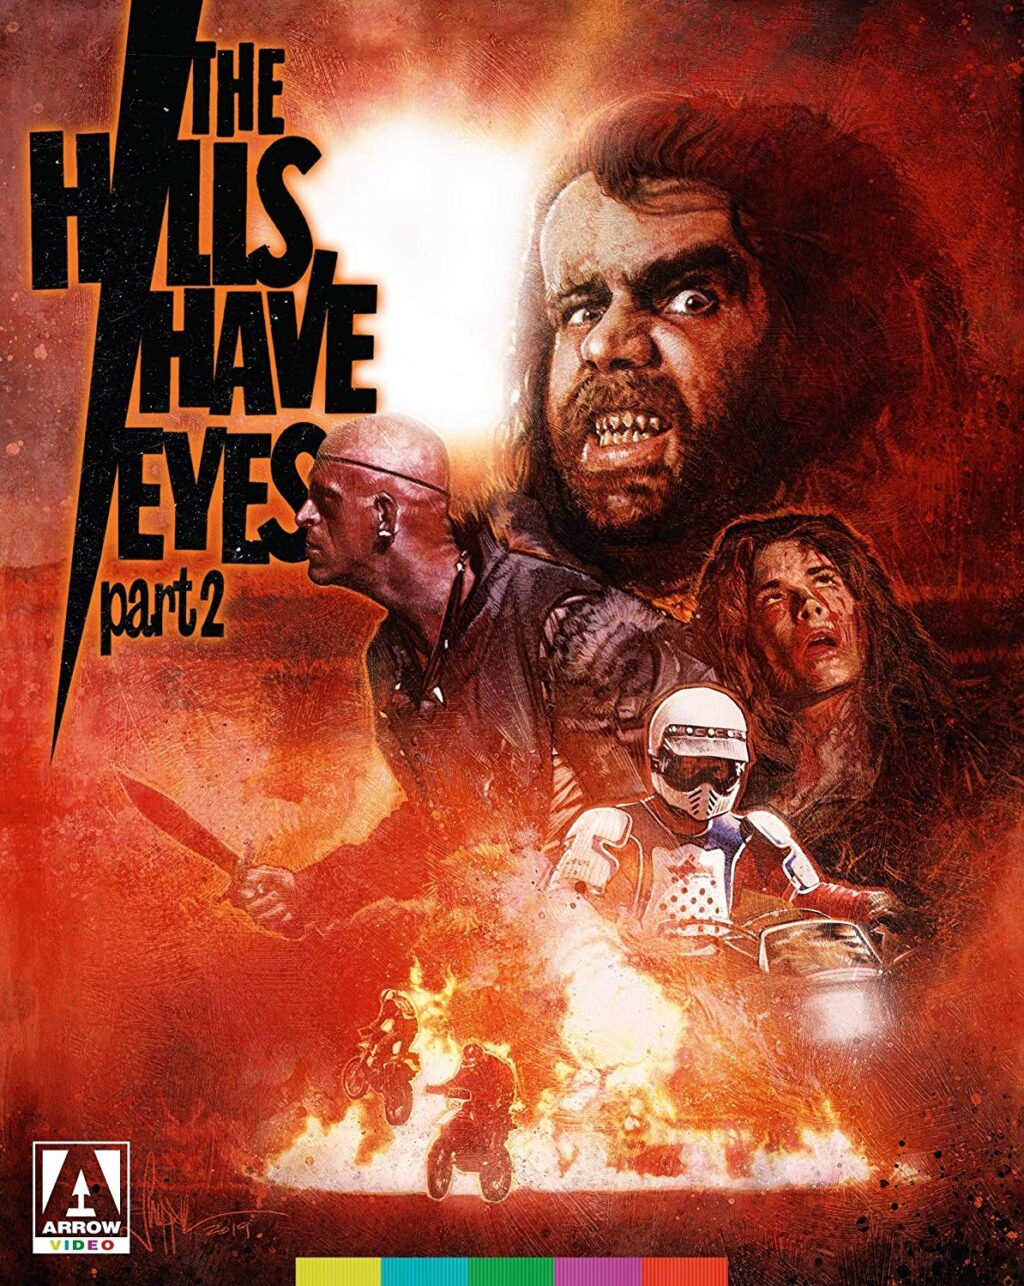 hills have eyes part 2 blu 1024x1286 - THE HILLS HAVE EYES PART II Blu-ray Review - Still As Bad As You Remember It